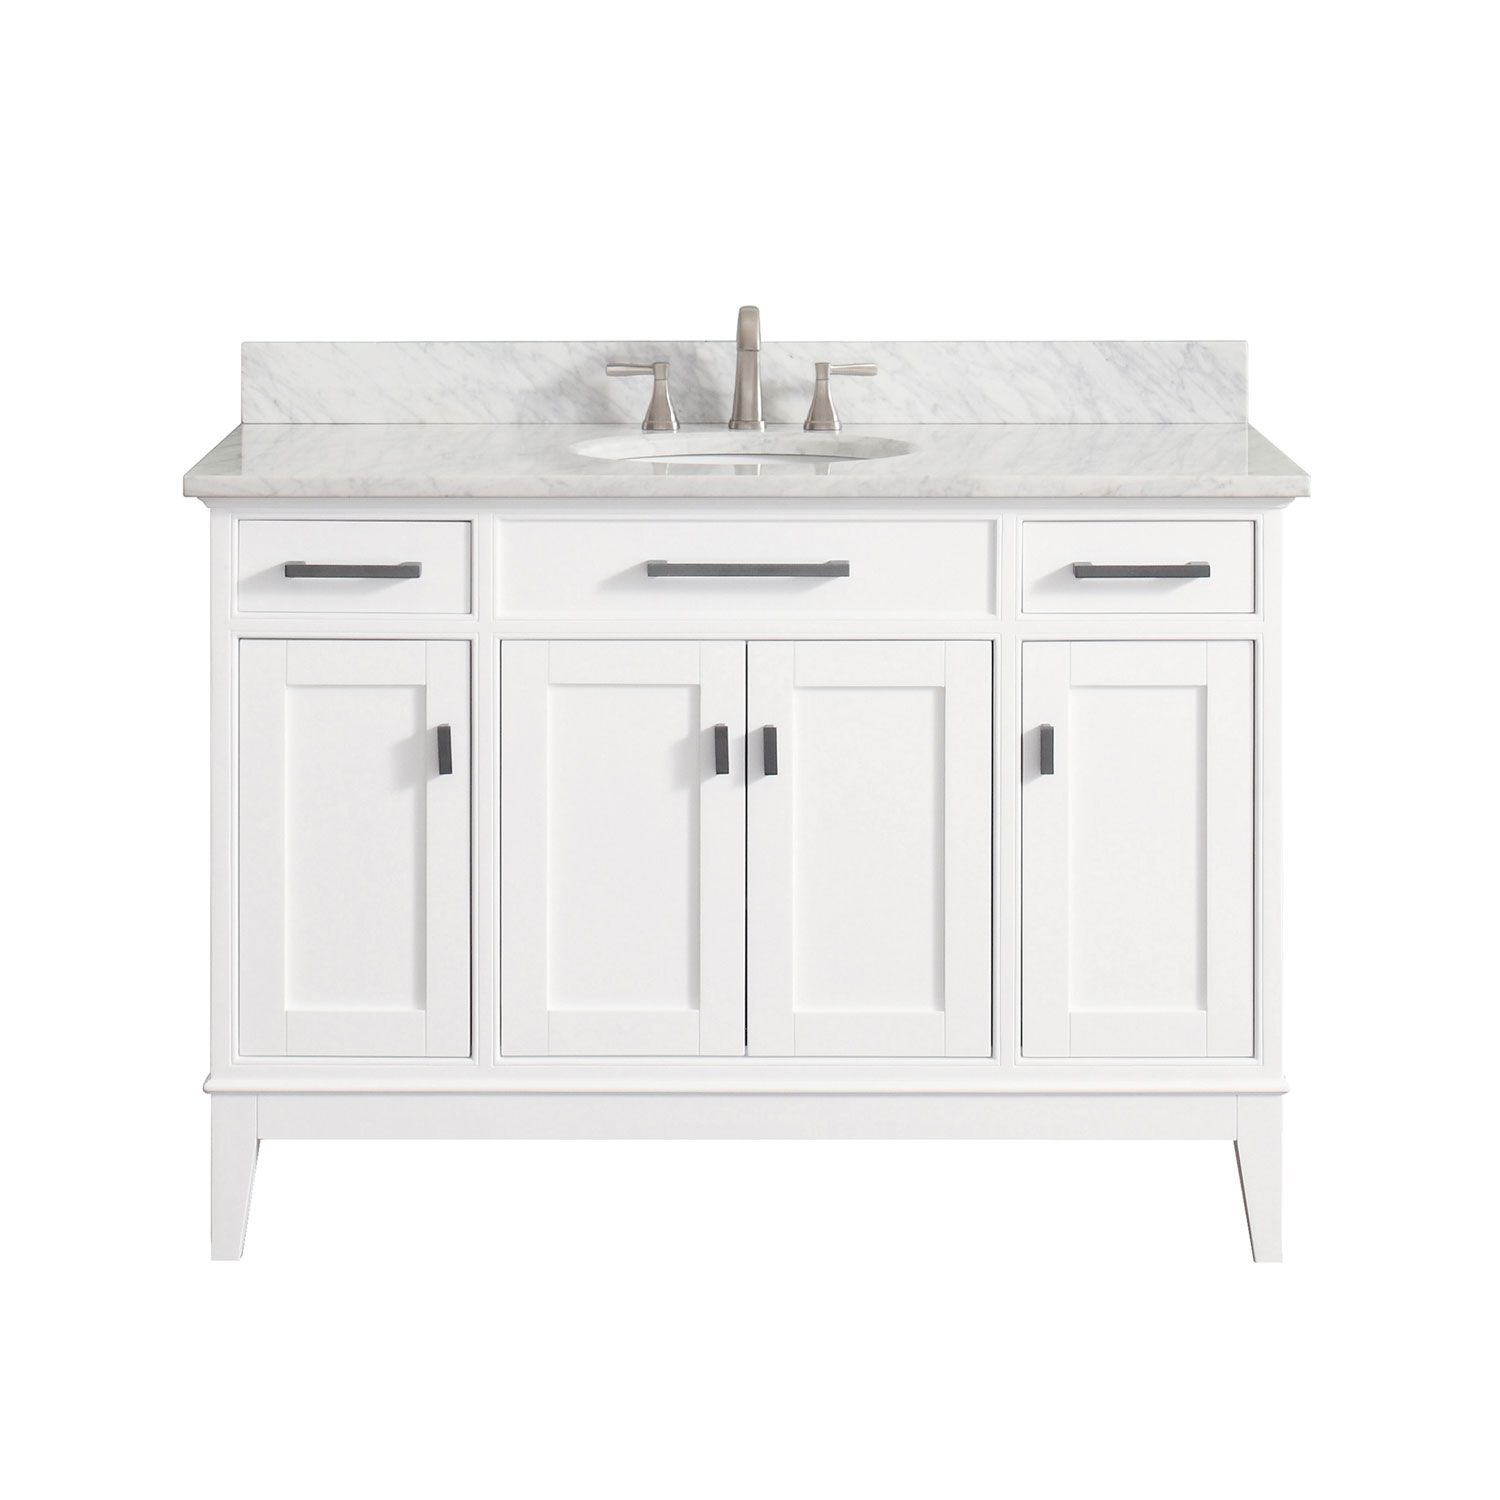 grey bathroom inch anny single top quartz finish vanity transitional